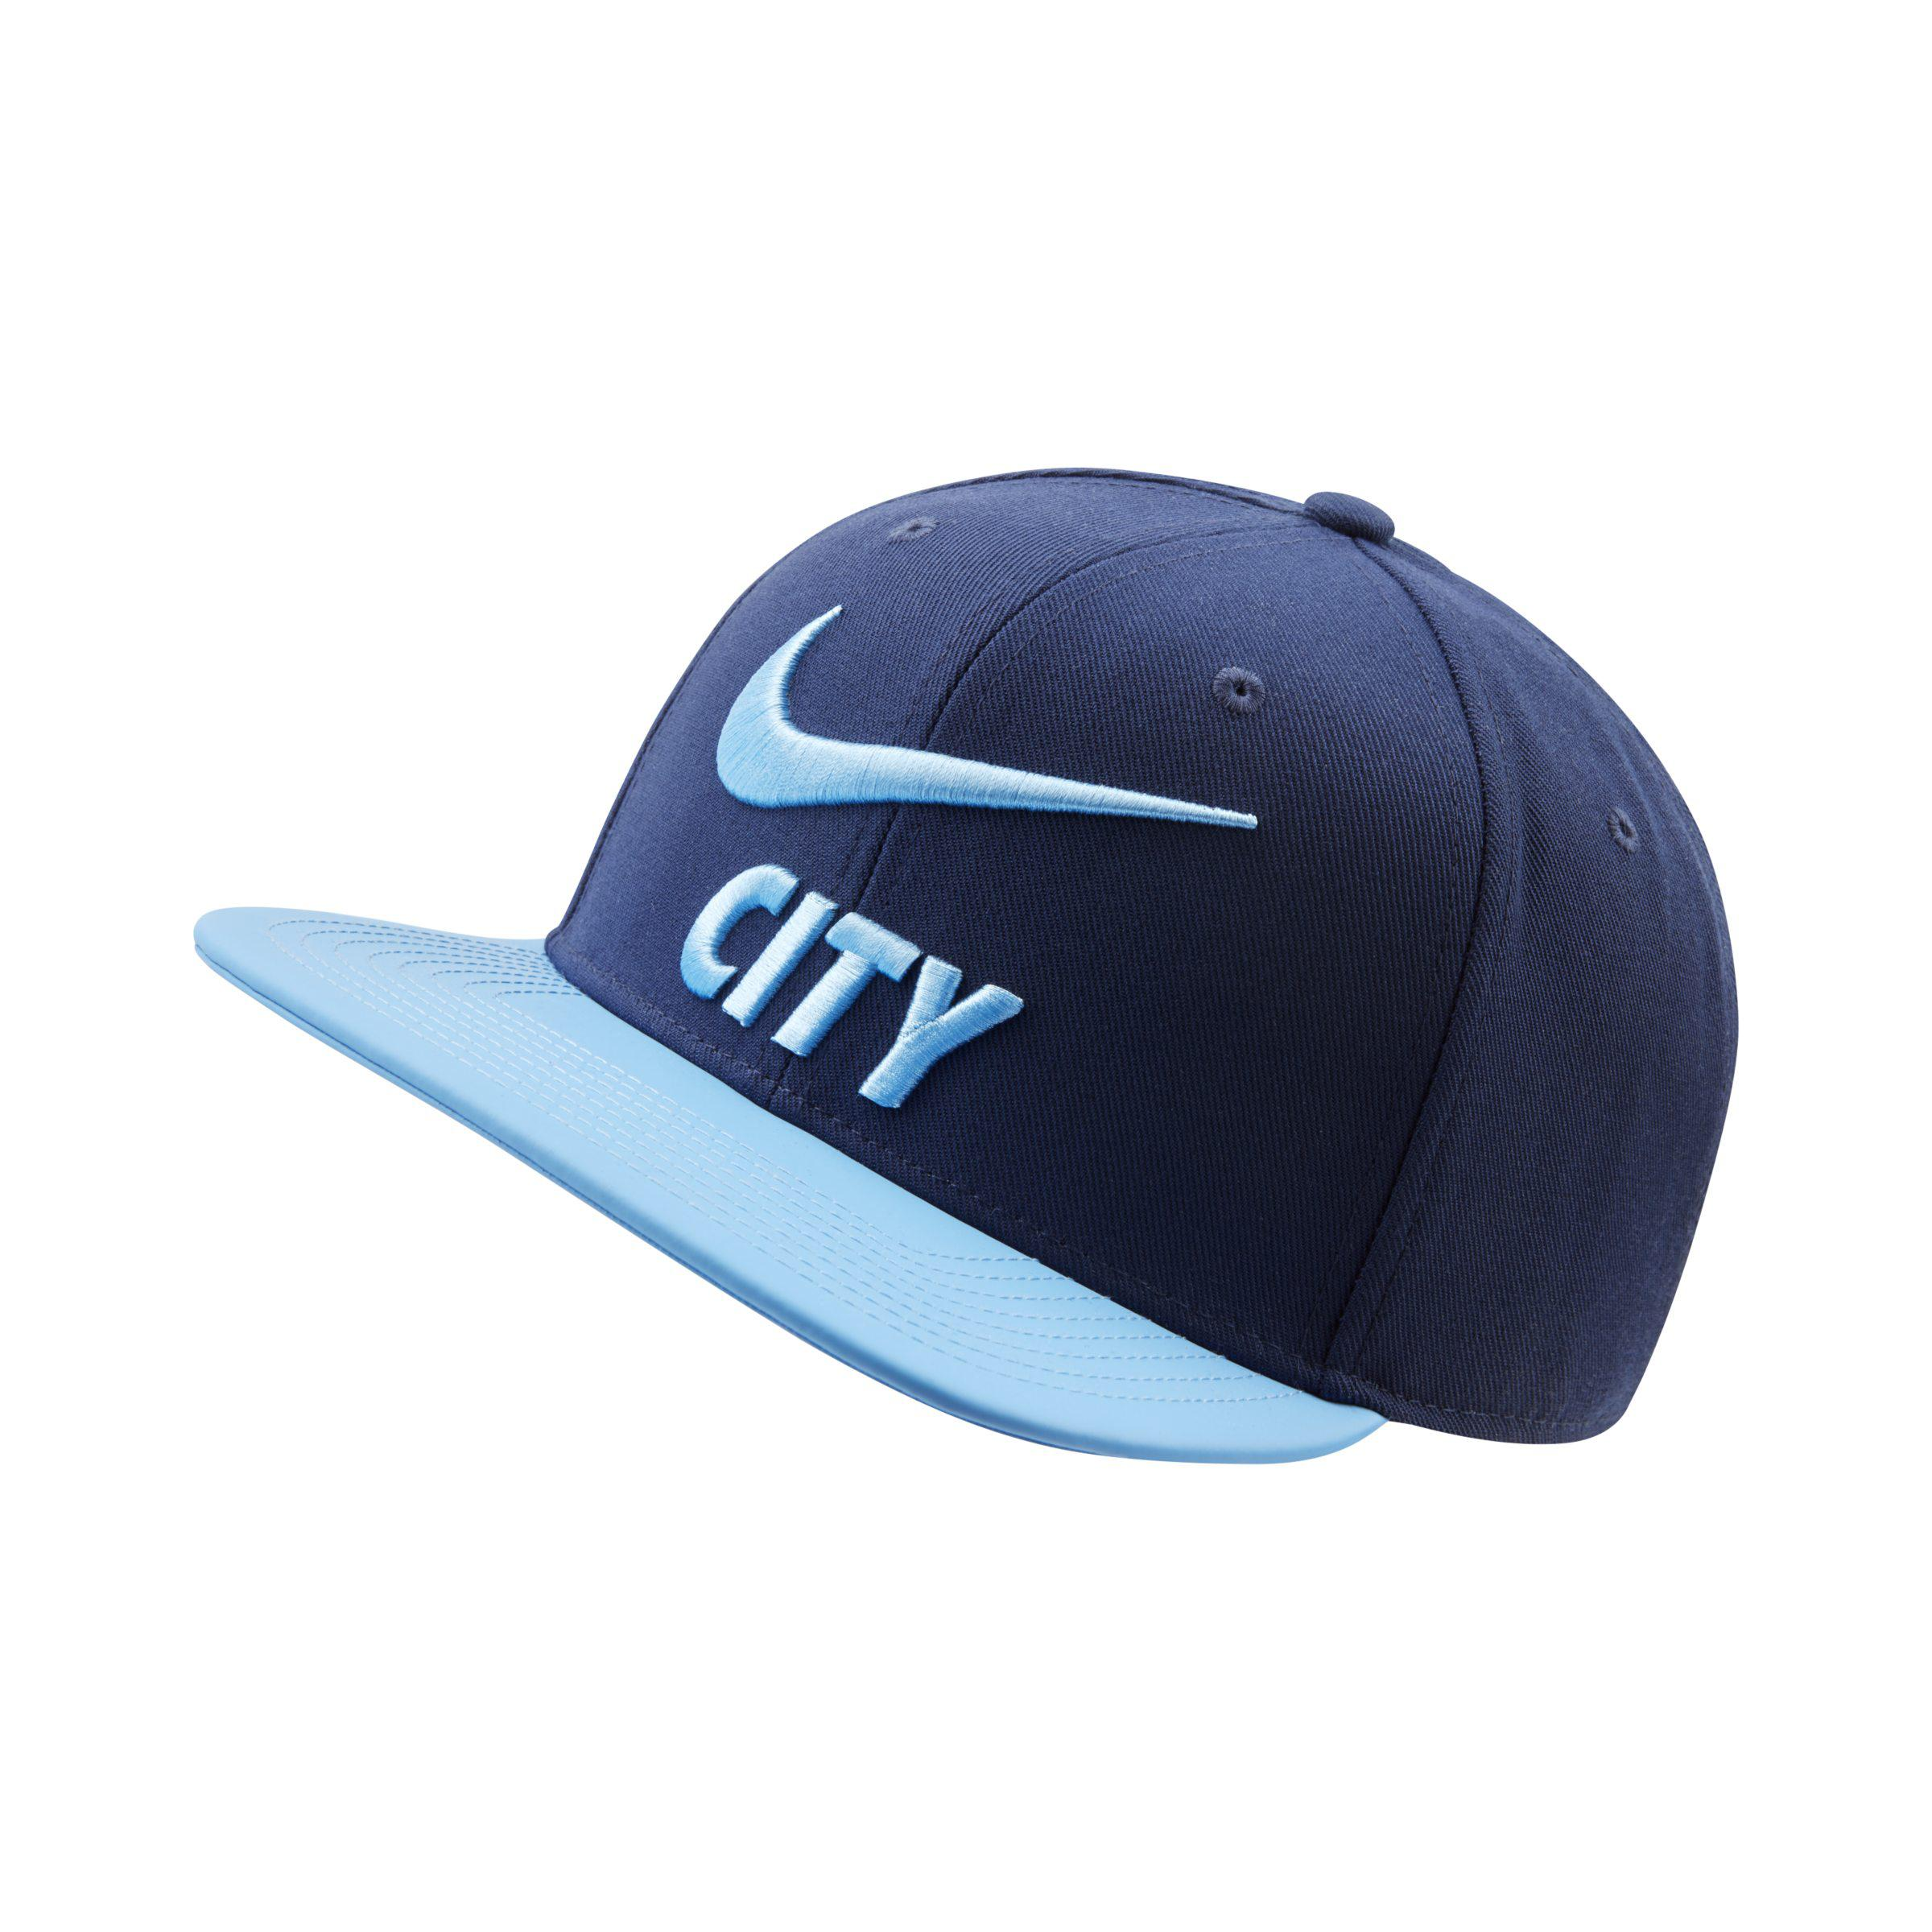 1b0f826f22f63 Nike Manchester City Fc Pro Adjustable Hat in Blue - Lyst